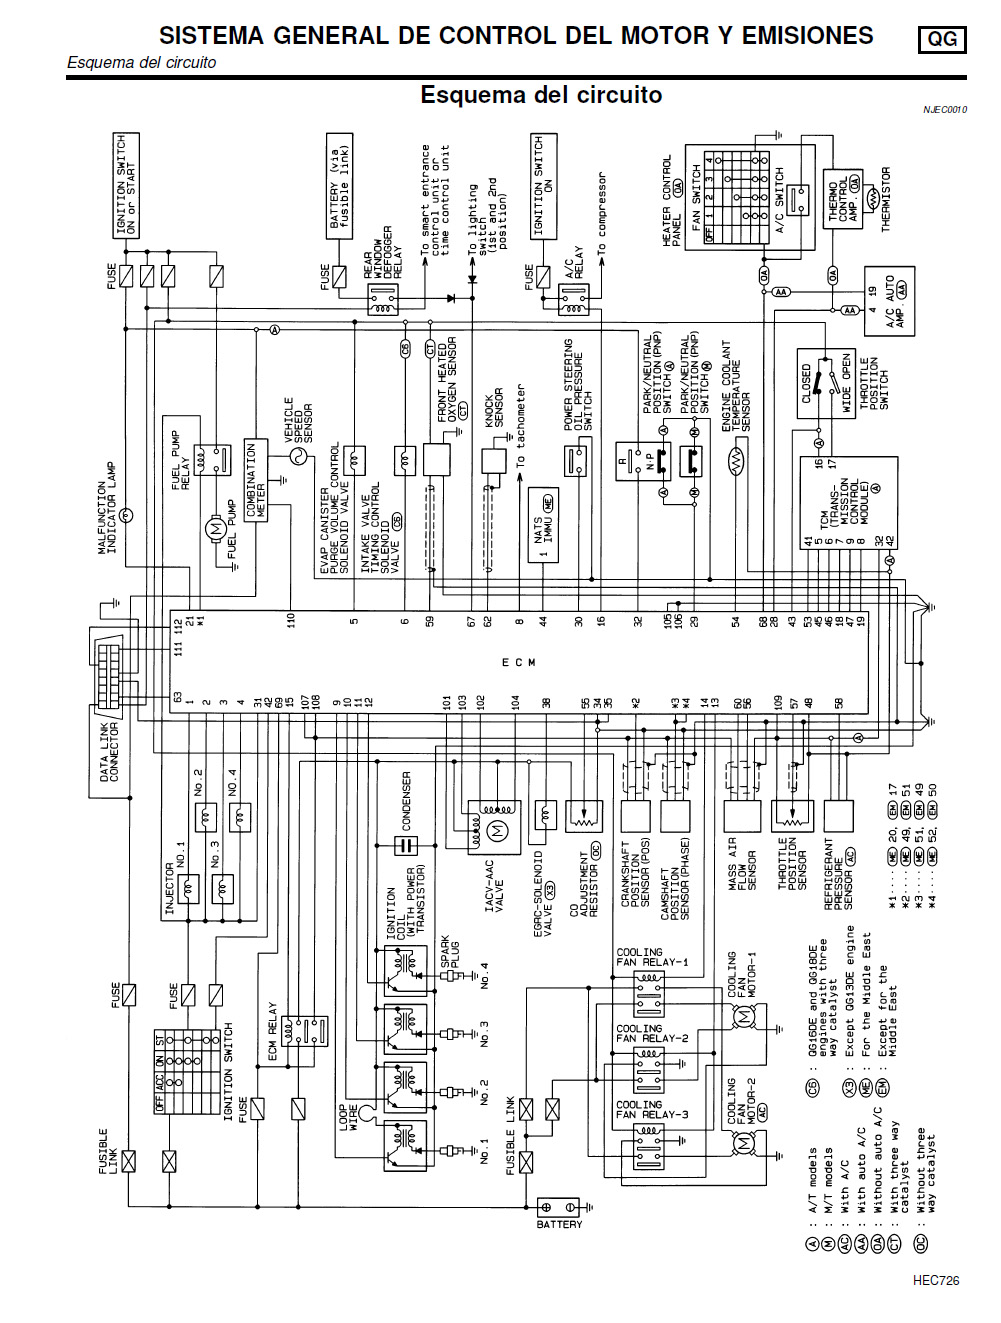 small resolution of 2013 nissan sentra wiring diagram 2013 nissan sentra fuse nissan sentra engine diagram 91 nissan sentra stereo wiring diagram